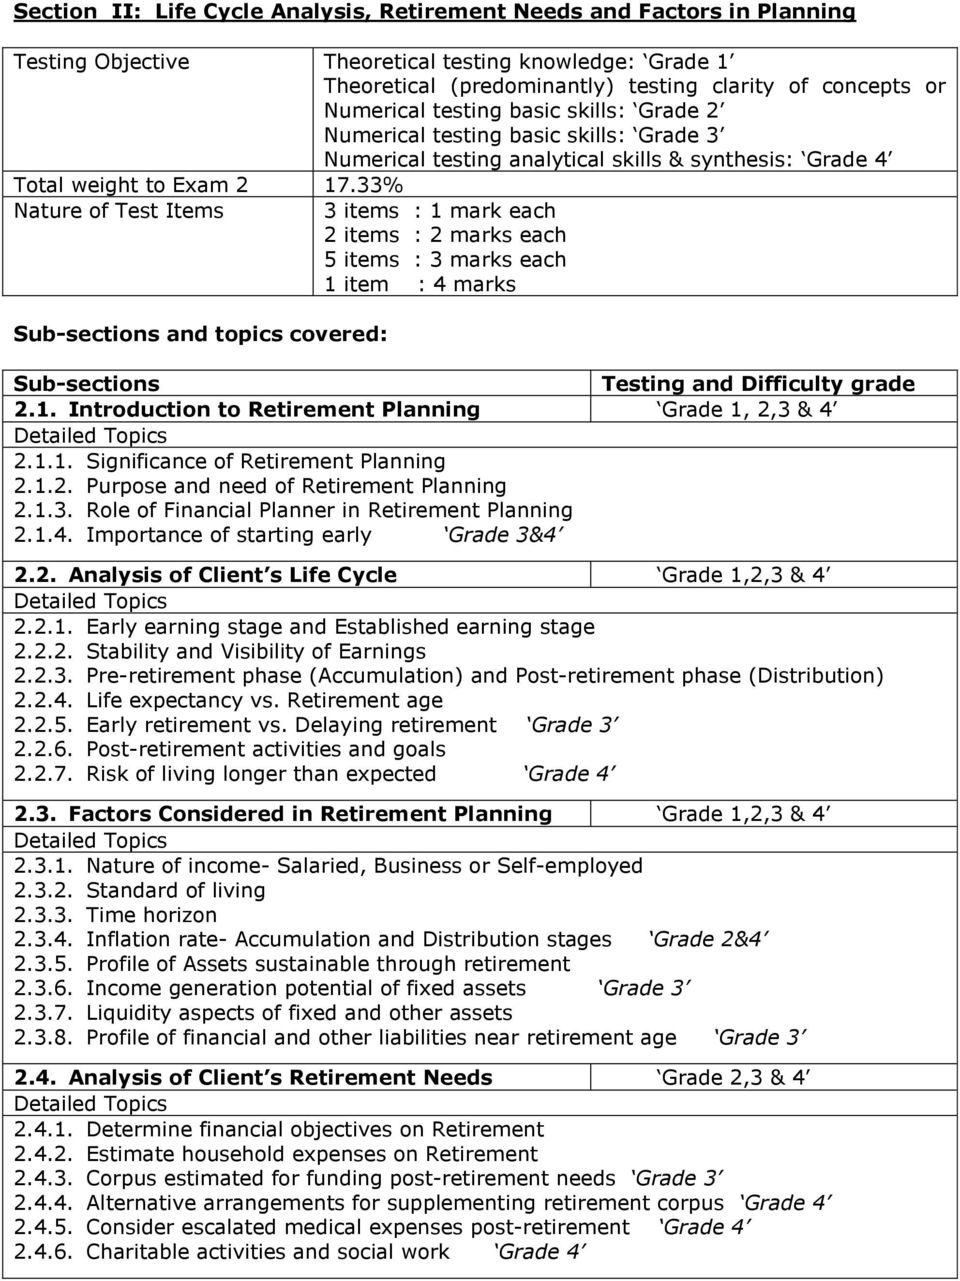 Luxury Basic Skills Test Math Sketch - General Worksheet ...